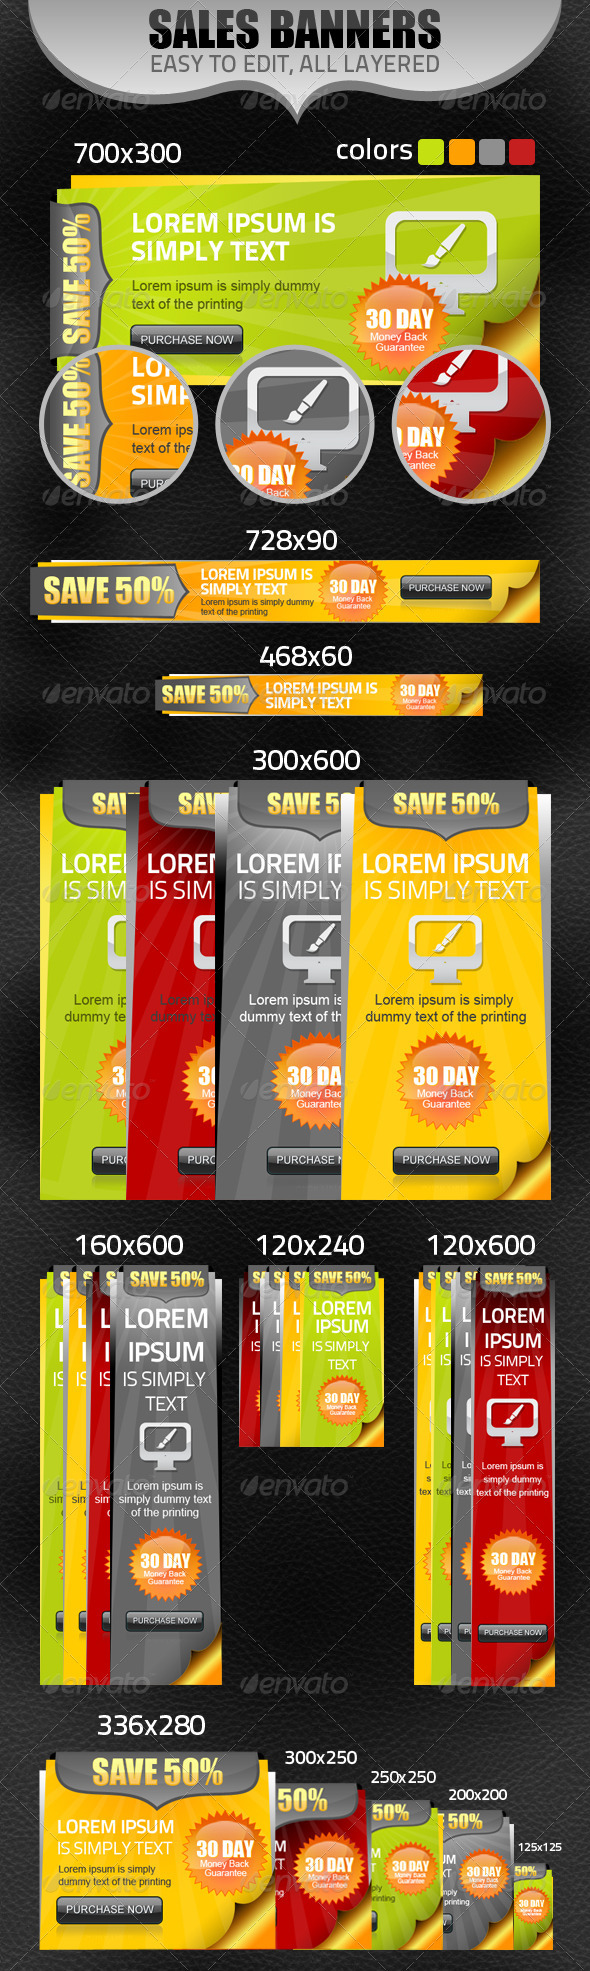 Multipurpose Sales Banners - Banners & Ads Web Elements